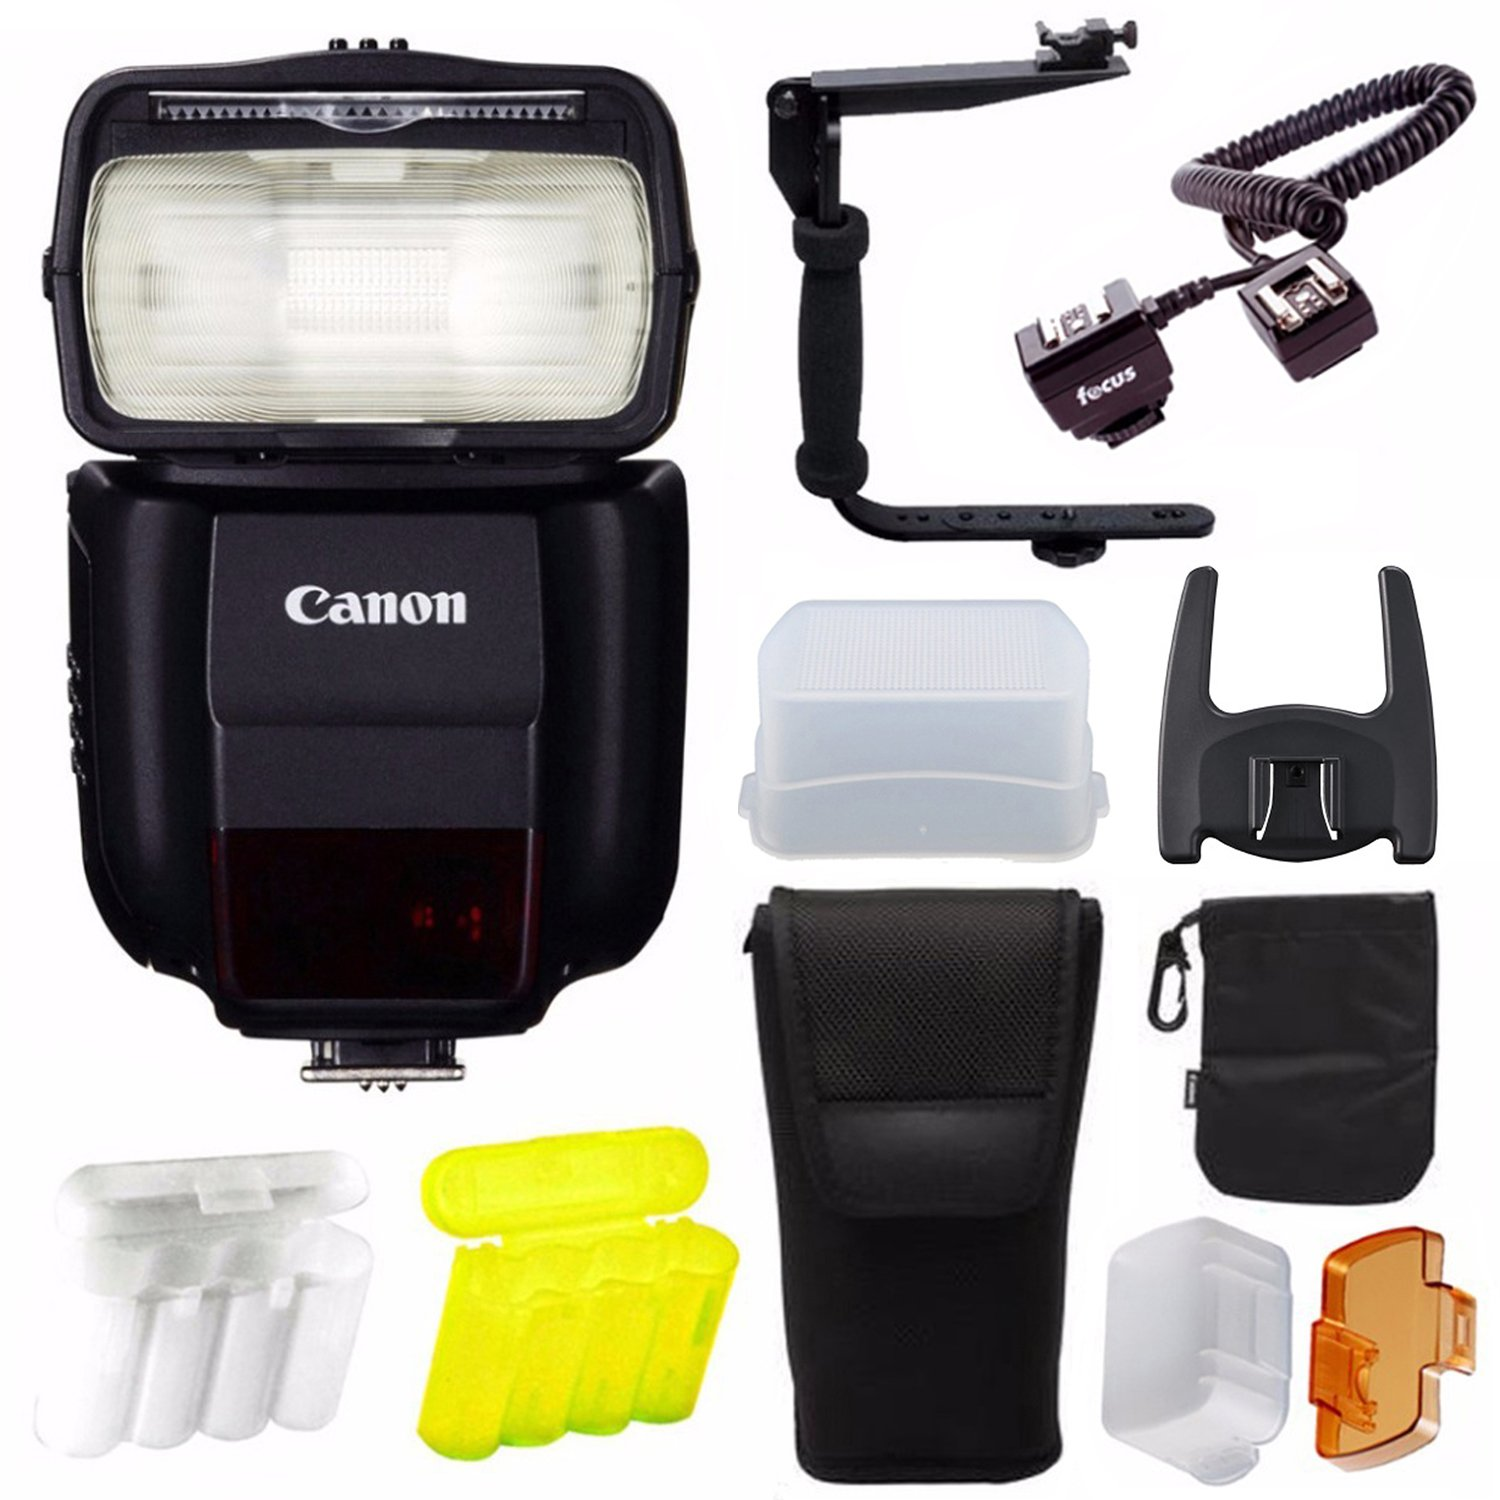 Canon Speedlite 430EX III-RT Guide Number 141 at ISO 100 Flashpoint TTL-Off Camera Flash Cord EOS 3 Bundle with 4 AA Ni-MH Batteries with Charger Mini SoftBox Diffuser